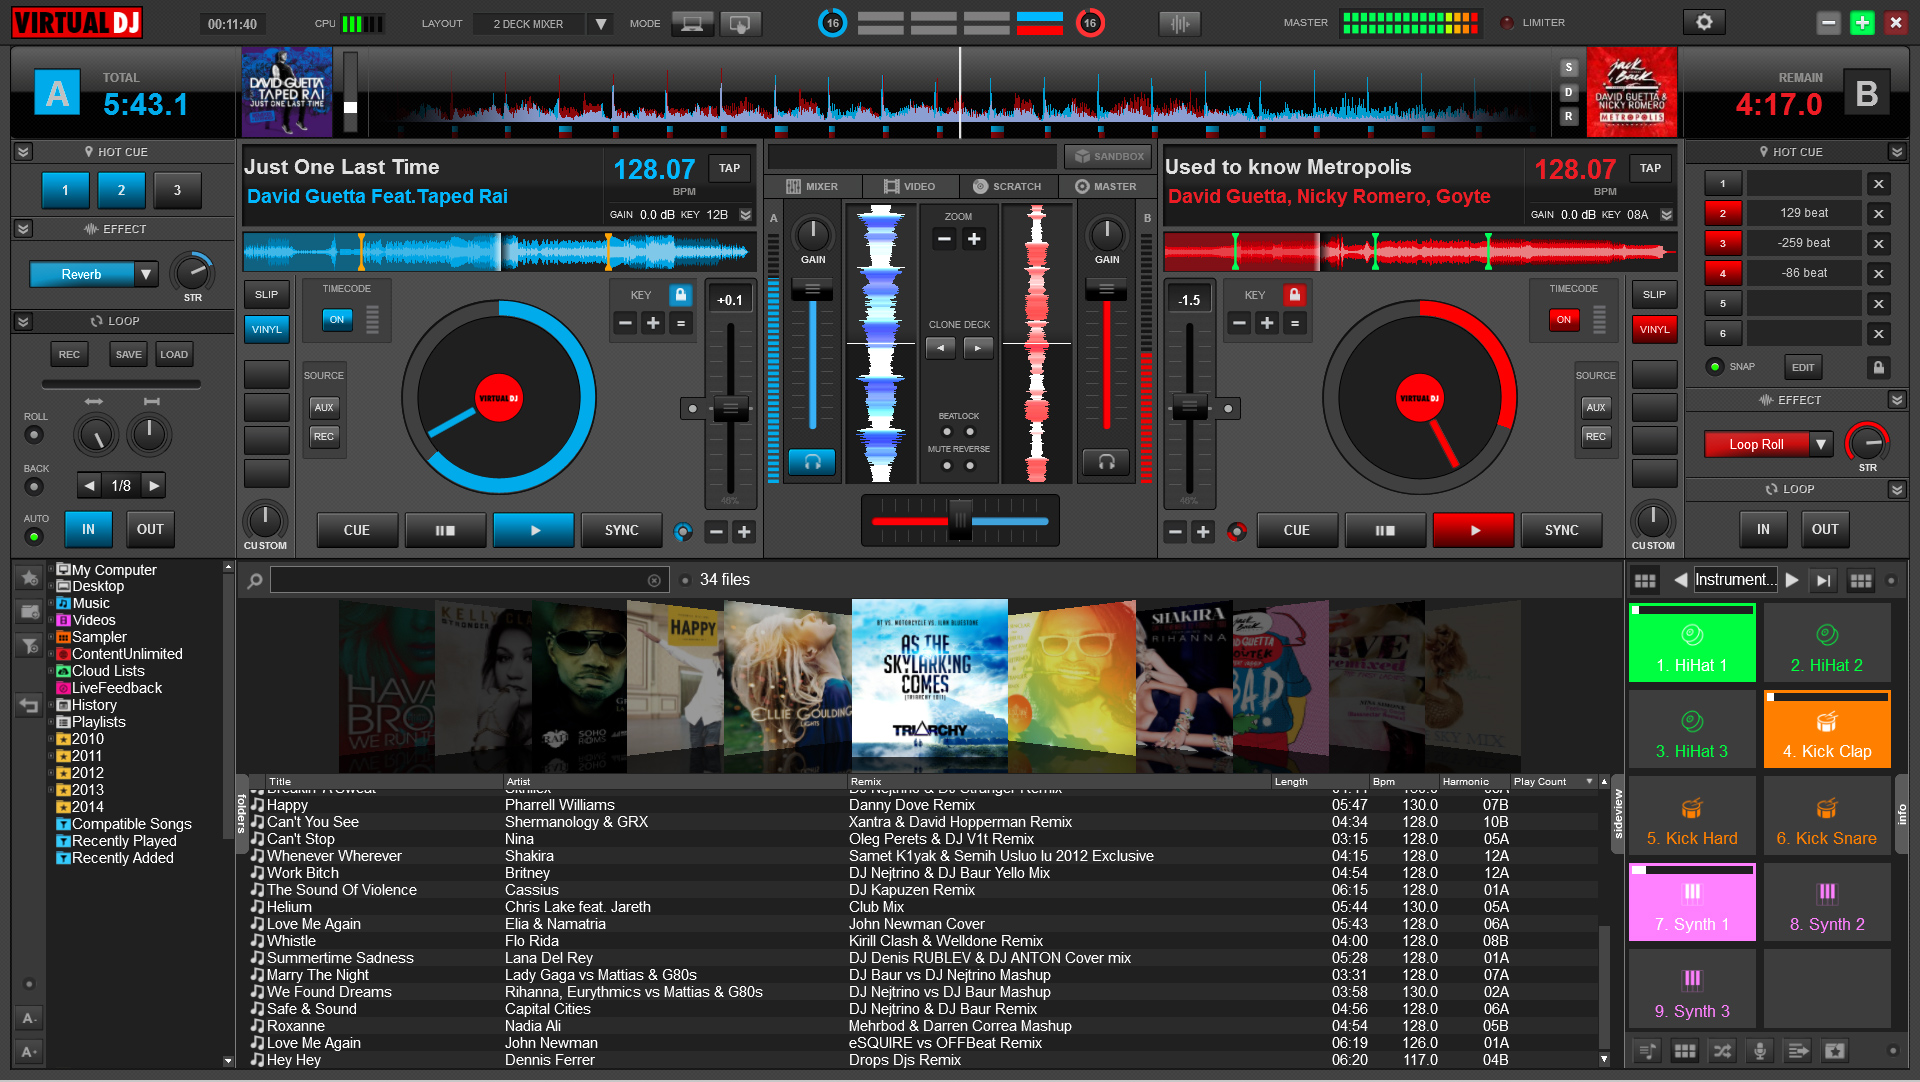 Virtual DJ Home for Mac 8.2.3967 full